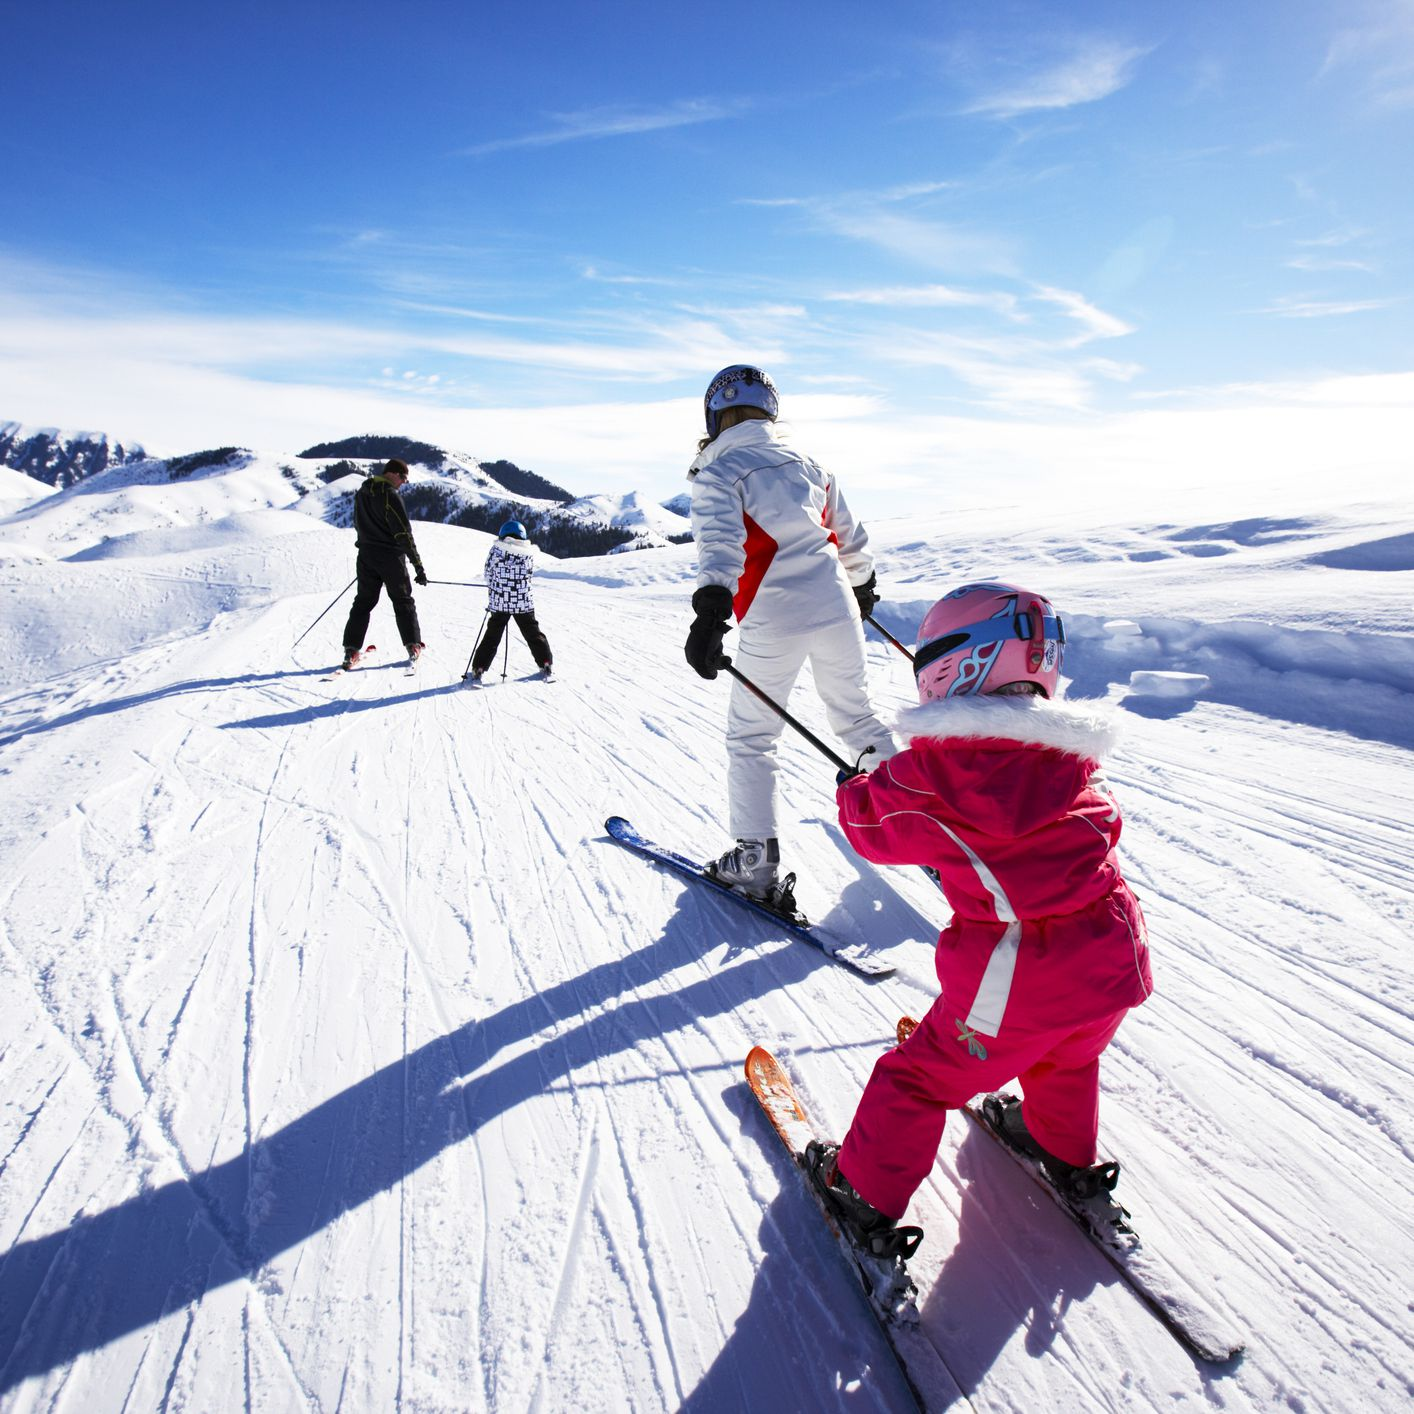 How to Start Skiing?